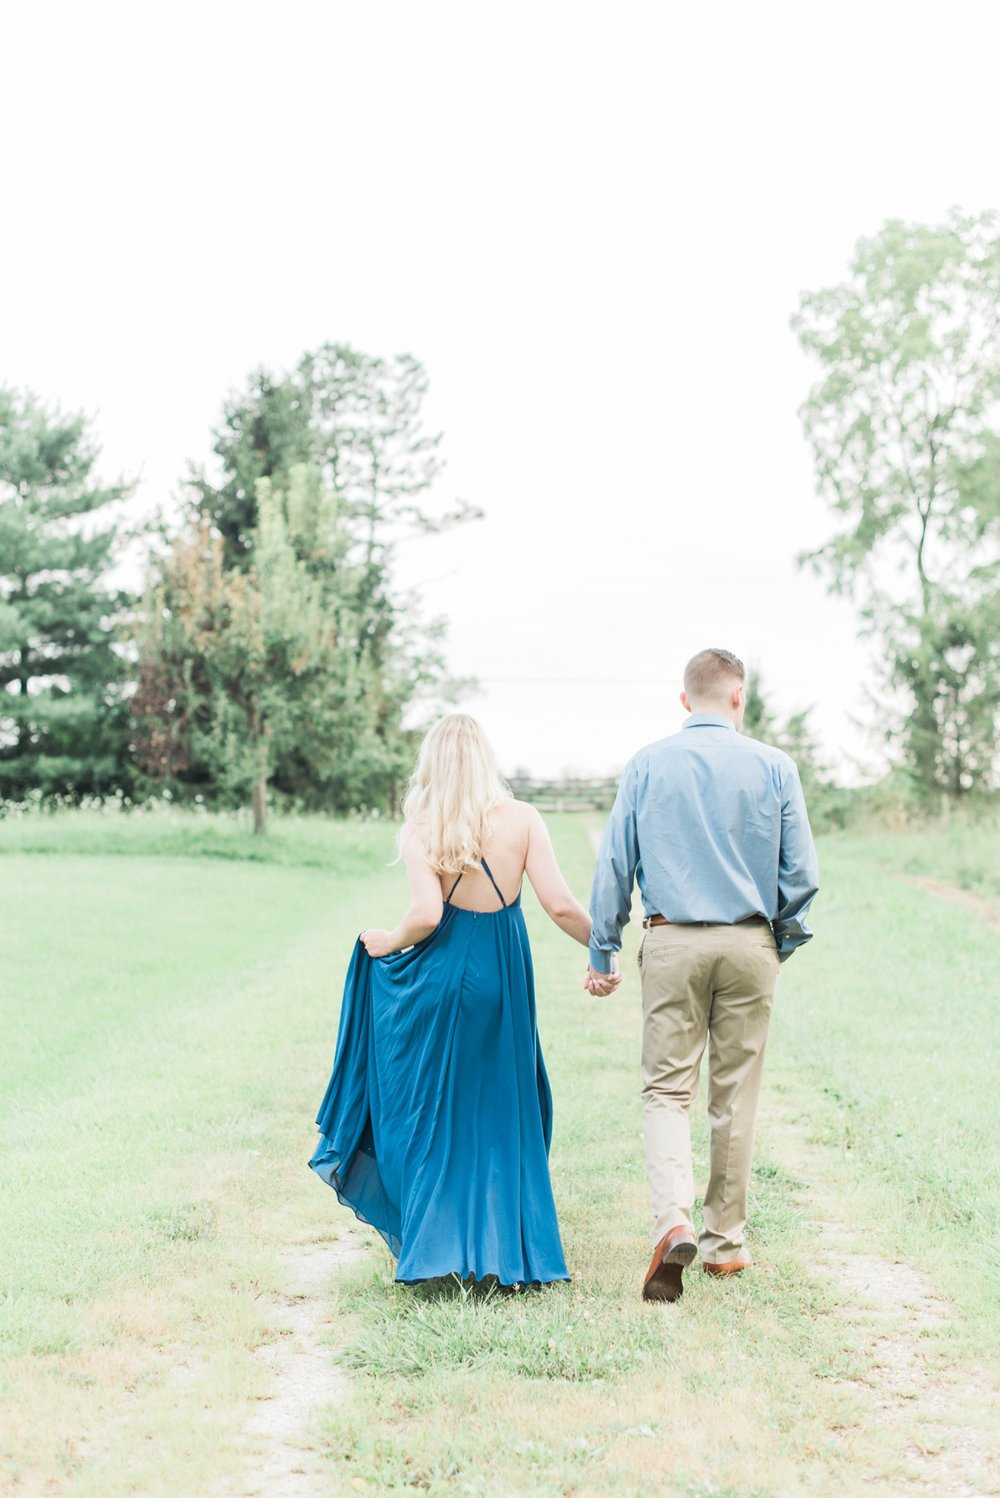 slate-run-metro-park-engagement-columbus-wedding-photographer-47.jpg